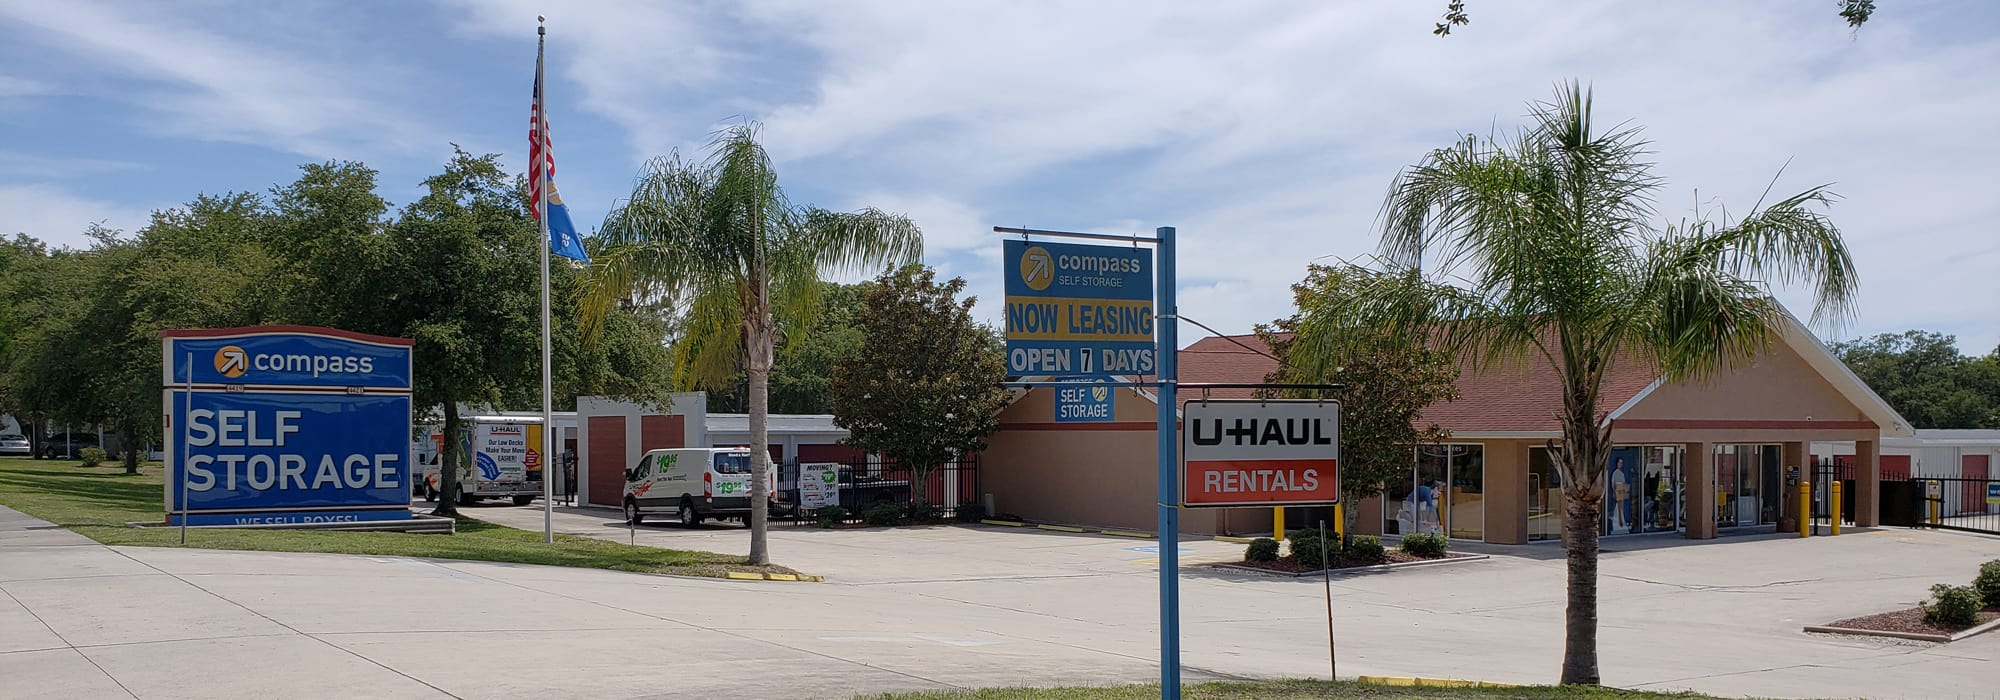 Merveilleux Self Storage In New Port Richey FL